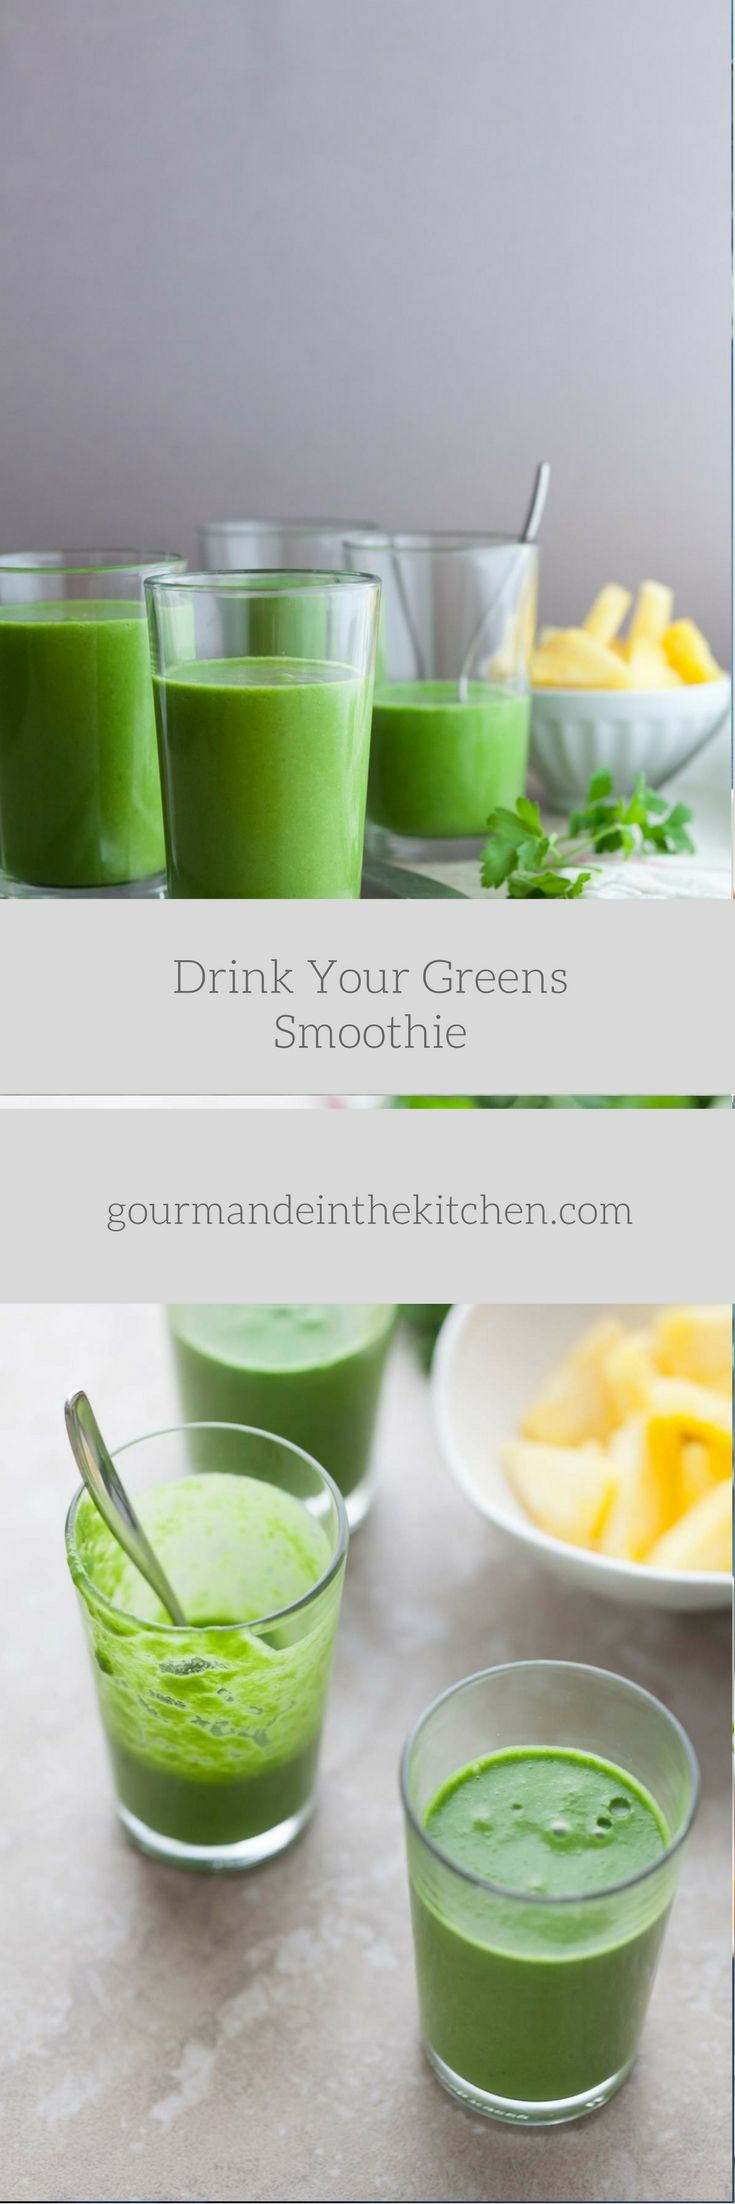 A green smoothie packed with nutrients featuring a trio of greens along with pineapple and coconut milk.  While December is a month filled with feasts and festivities the beginning of the yea…